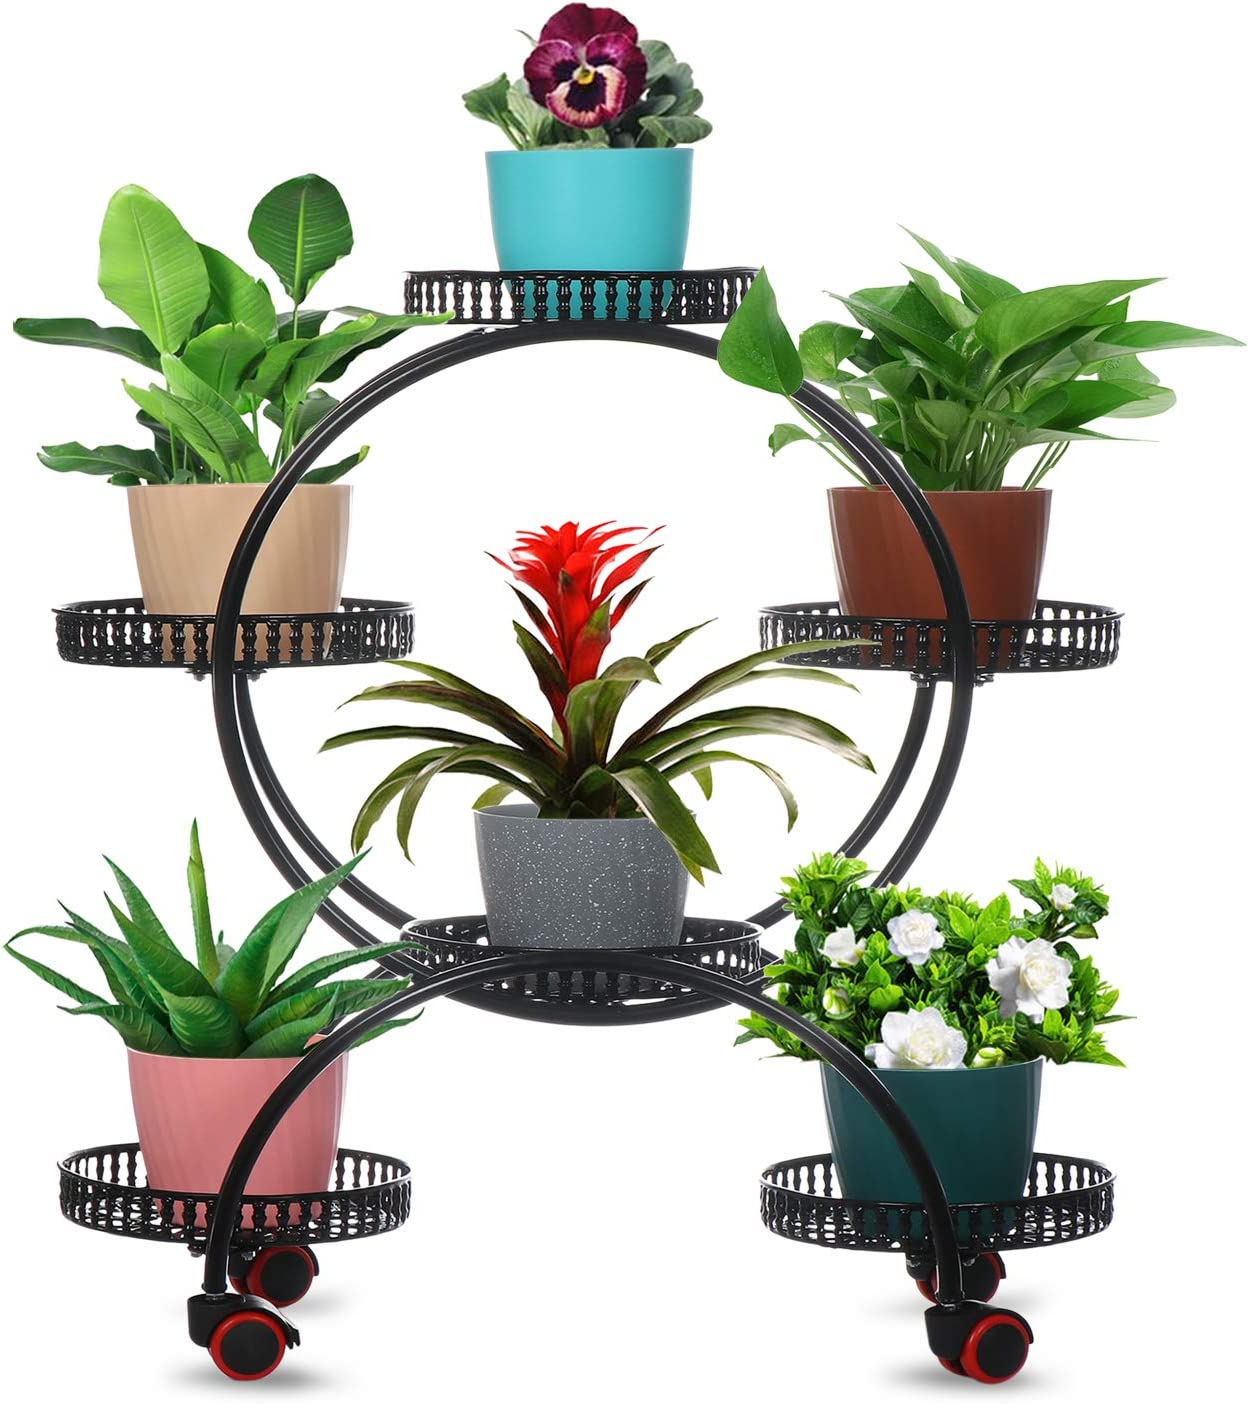 Metal Plant Stand,4 Tiers 6 Potted Holders,Indoor Outdoor Plants Flower Rack,Plant Shelf with Wheels,Rolling Plant Rack for Patio Garden Living Room Balcony (Plant Pots NOT Included) (Black)